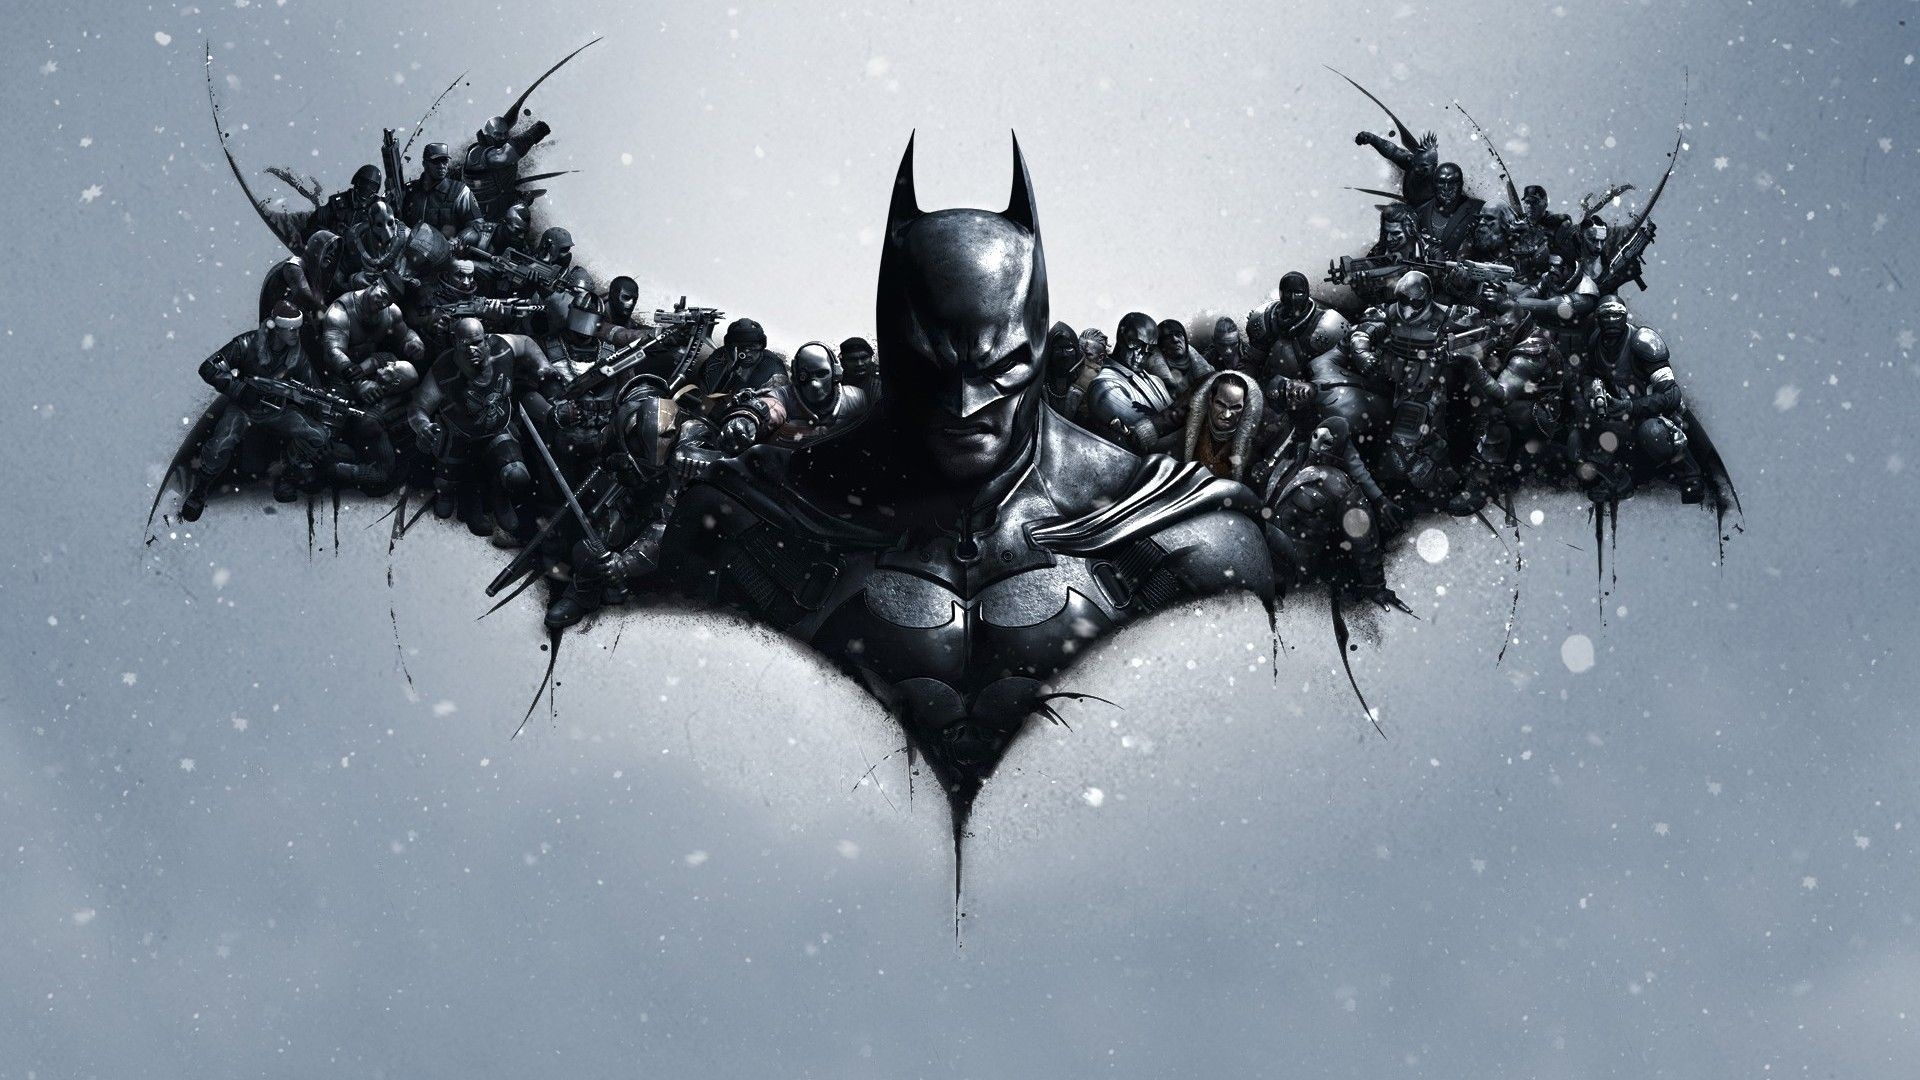 Batman Wallpapers And Screensavers 9701 Full HD Wallpaper Desktop .